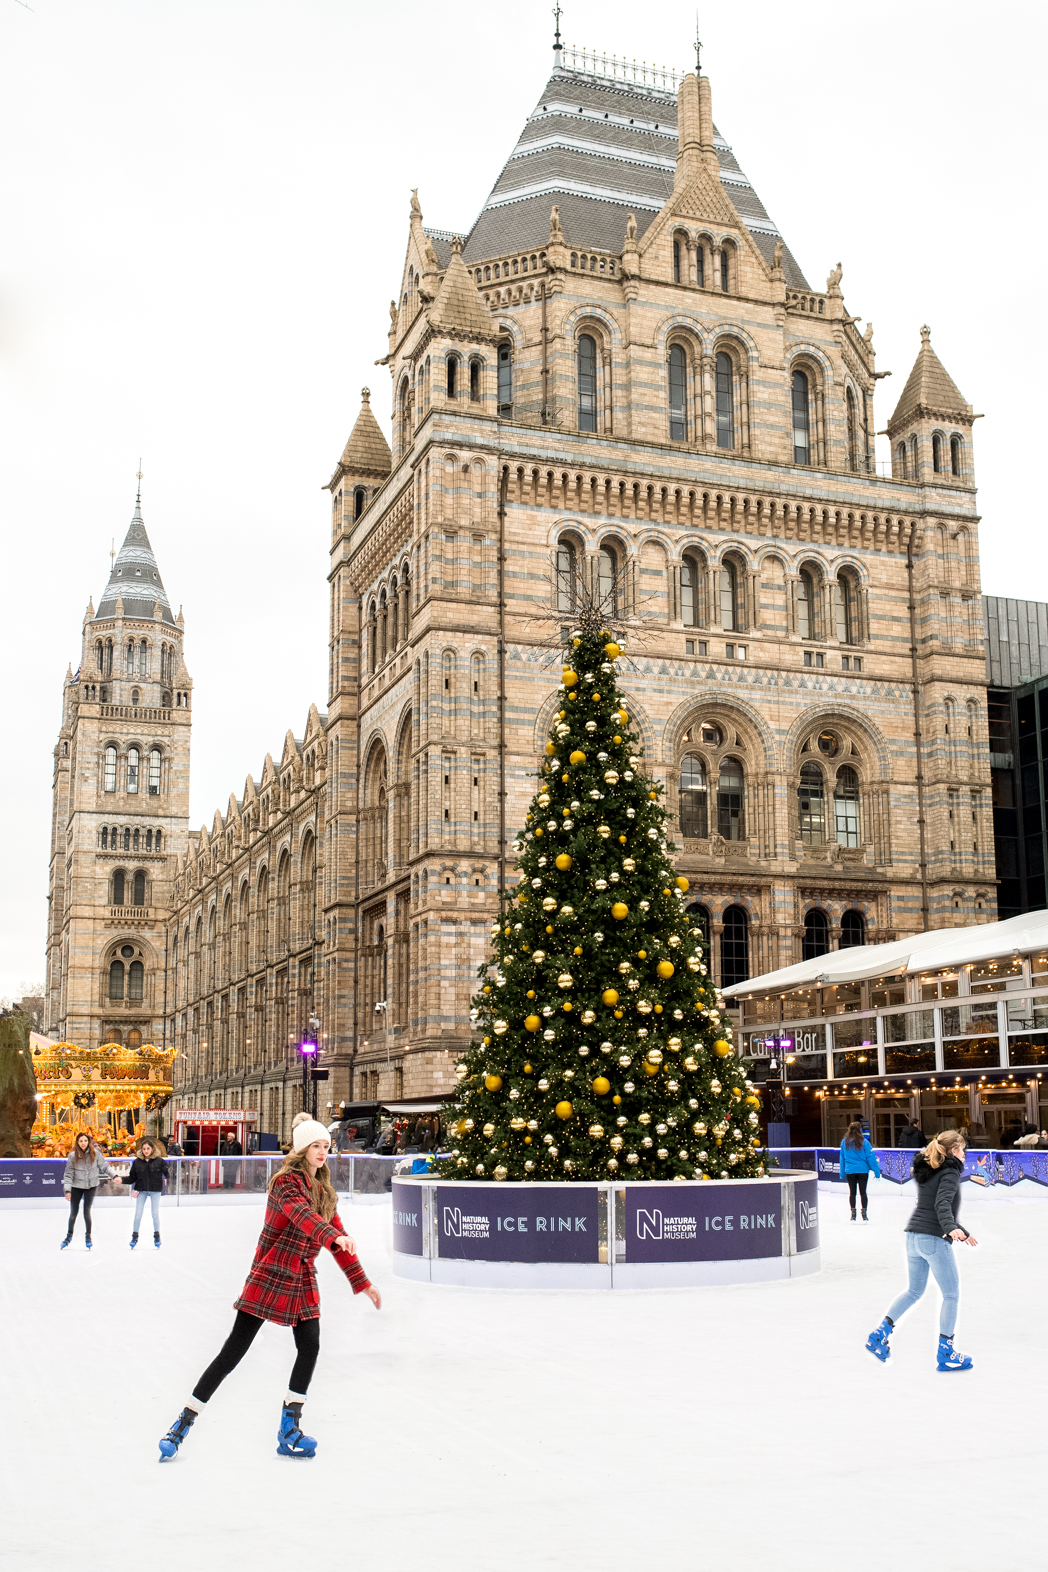 Stacie Flinner Best Christmas Things to Do London-40.jpg